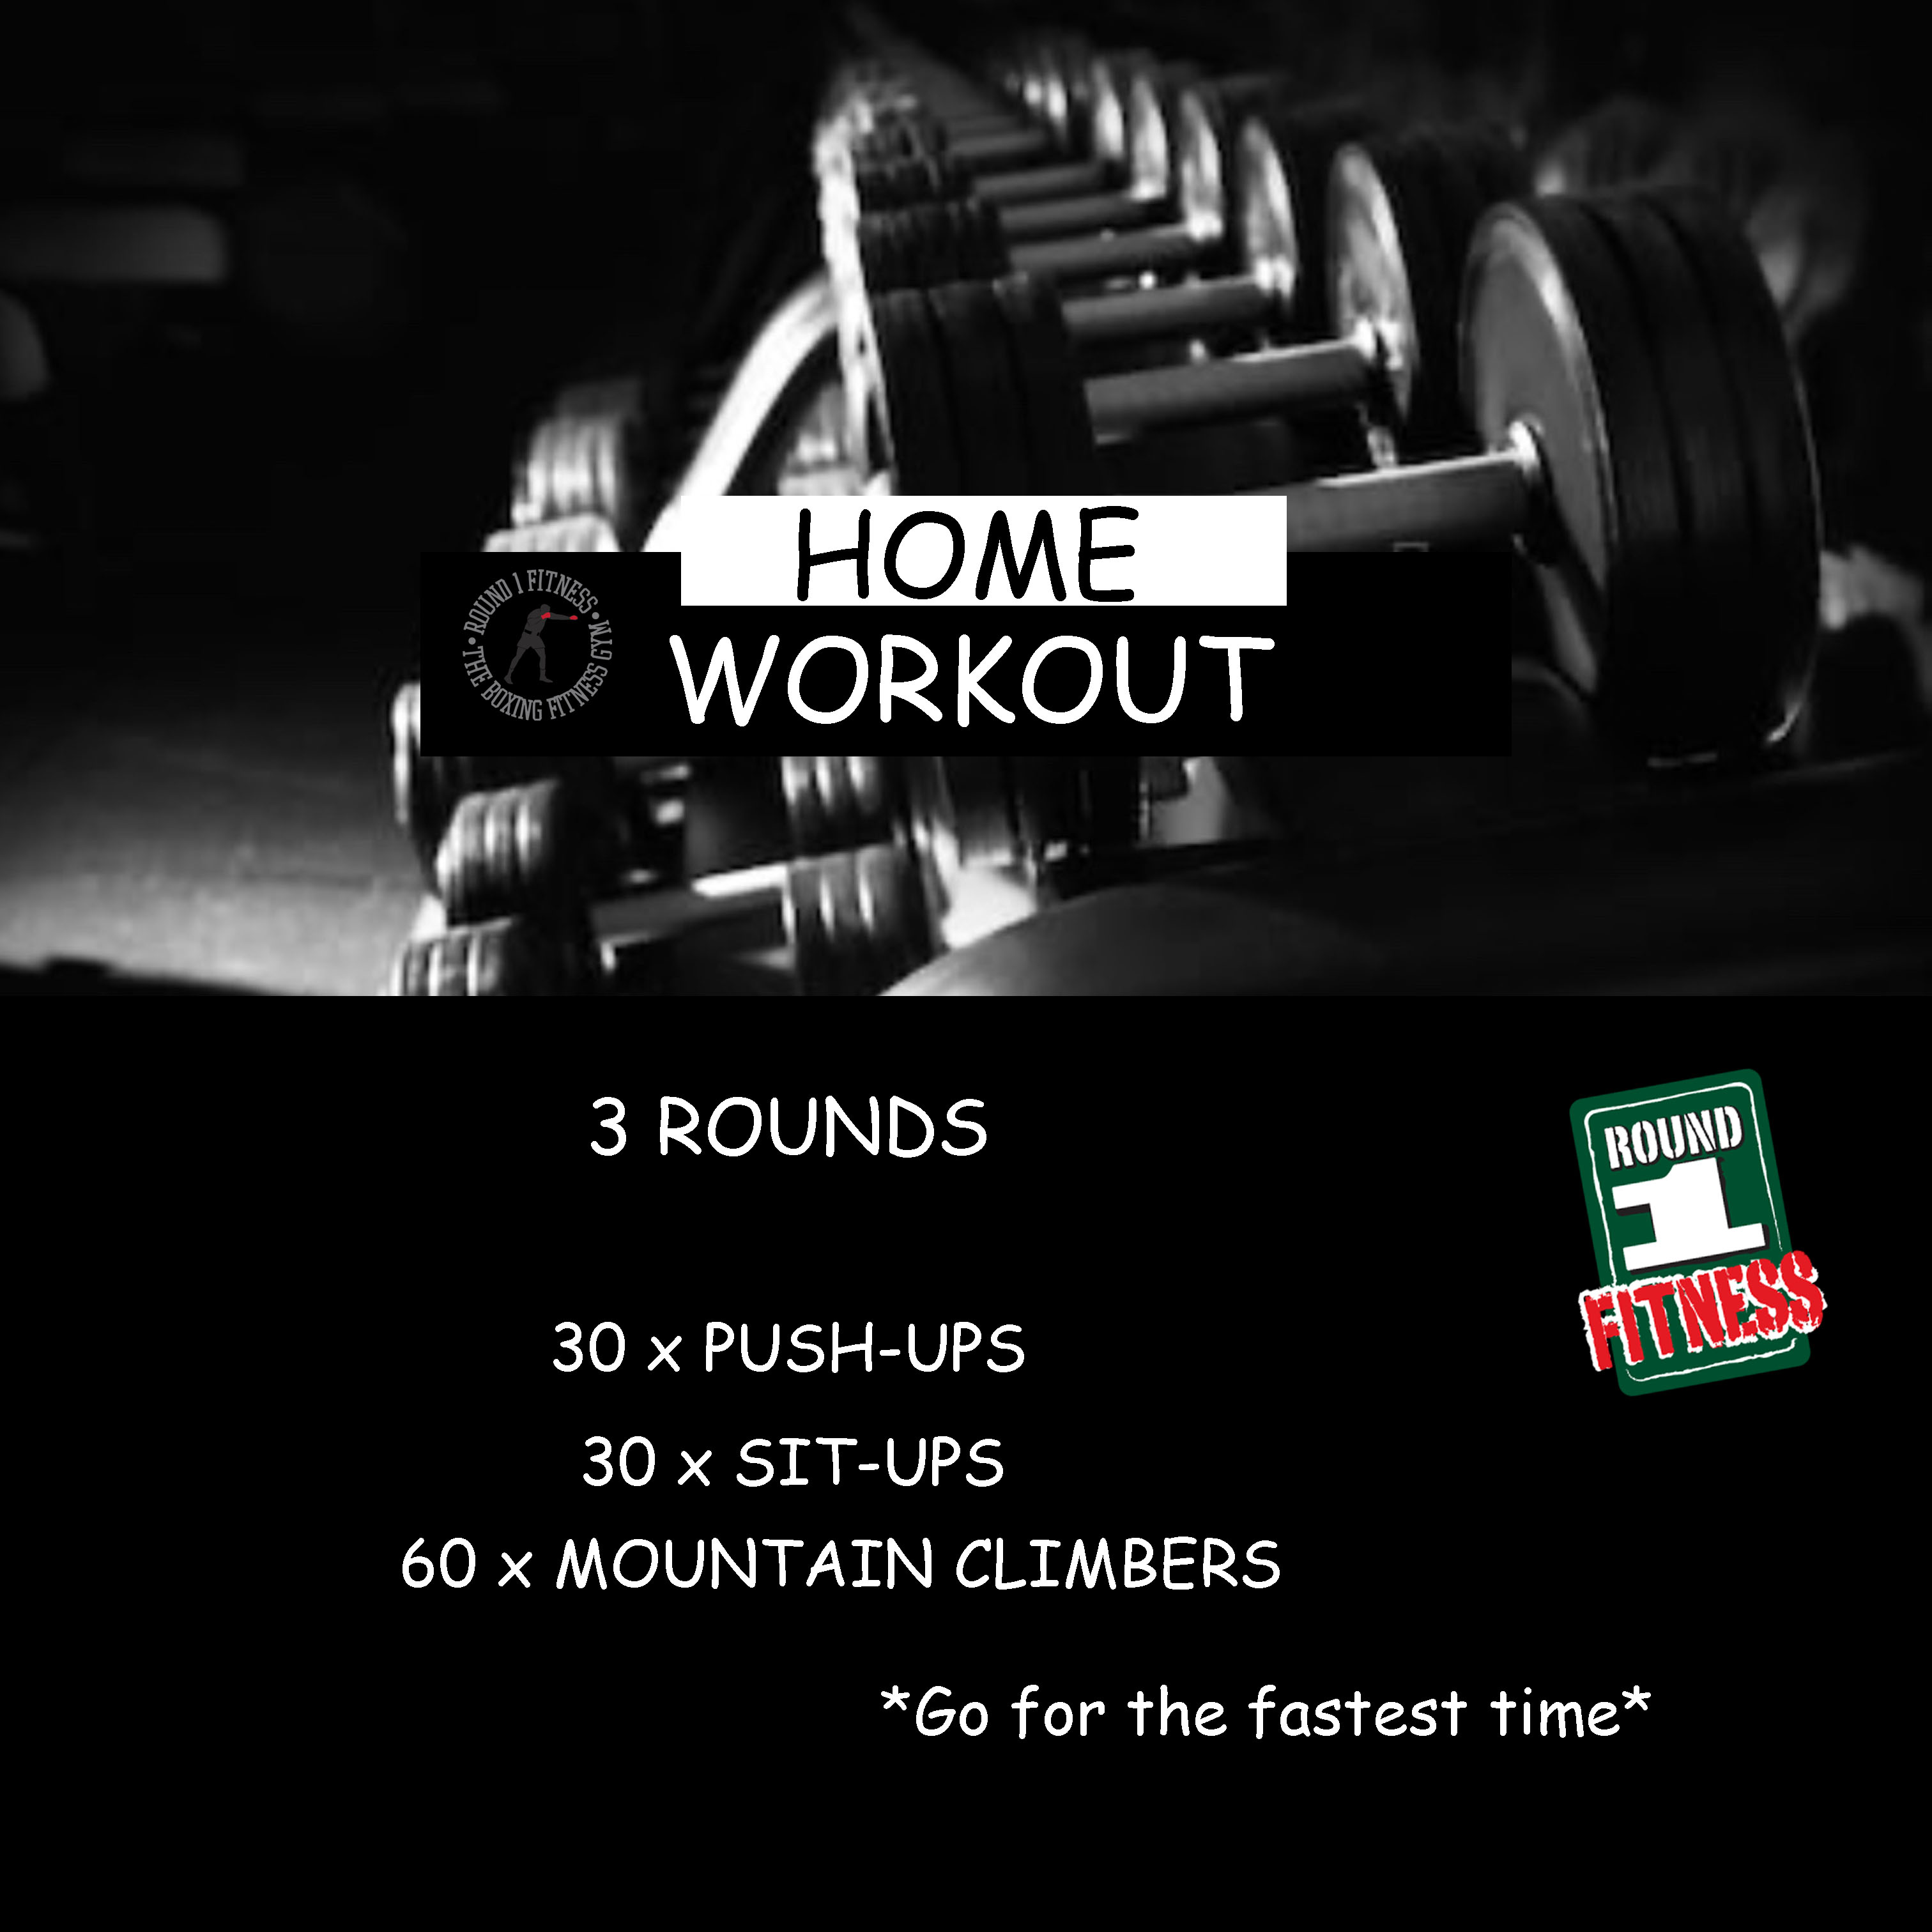 Home Workout:  Friday, April 3rd